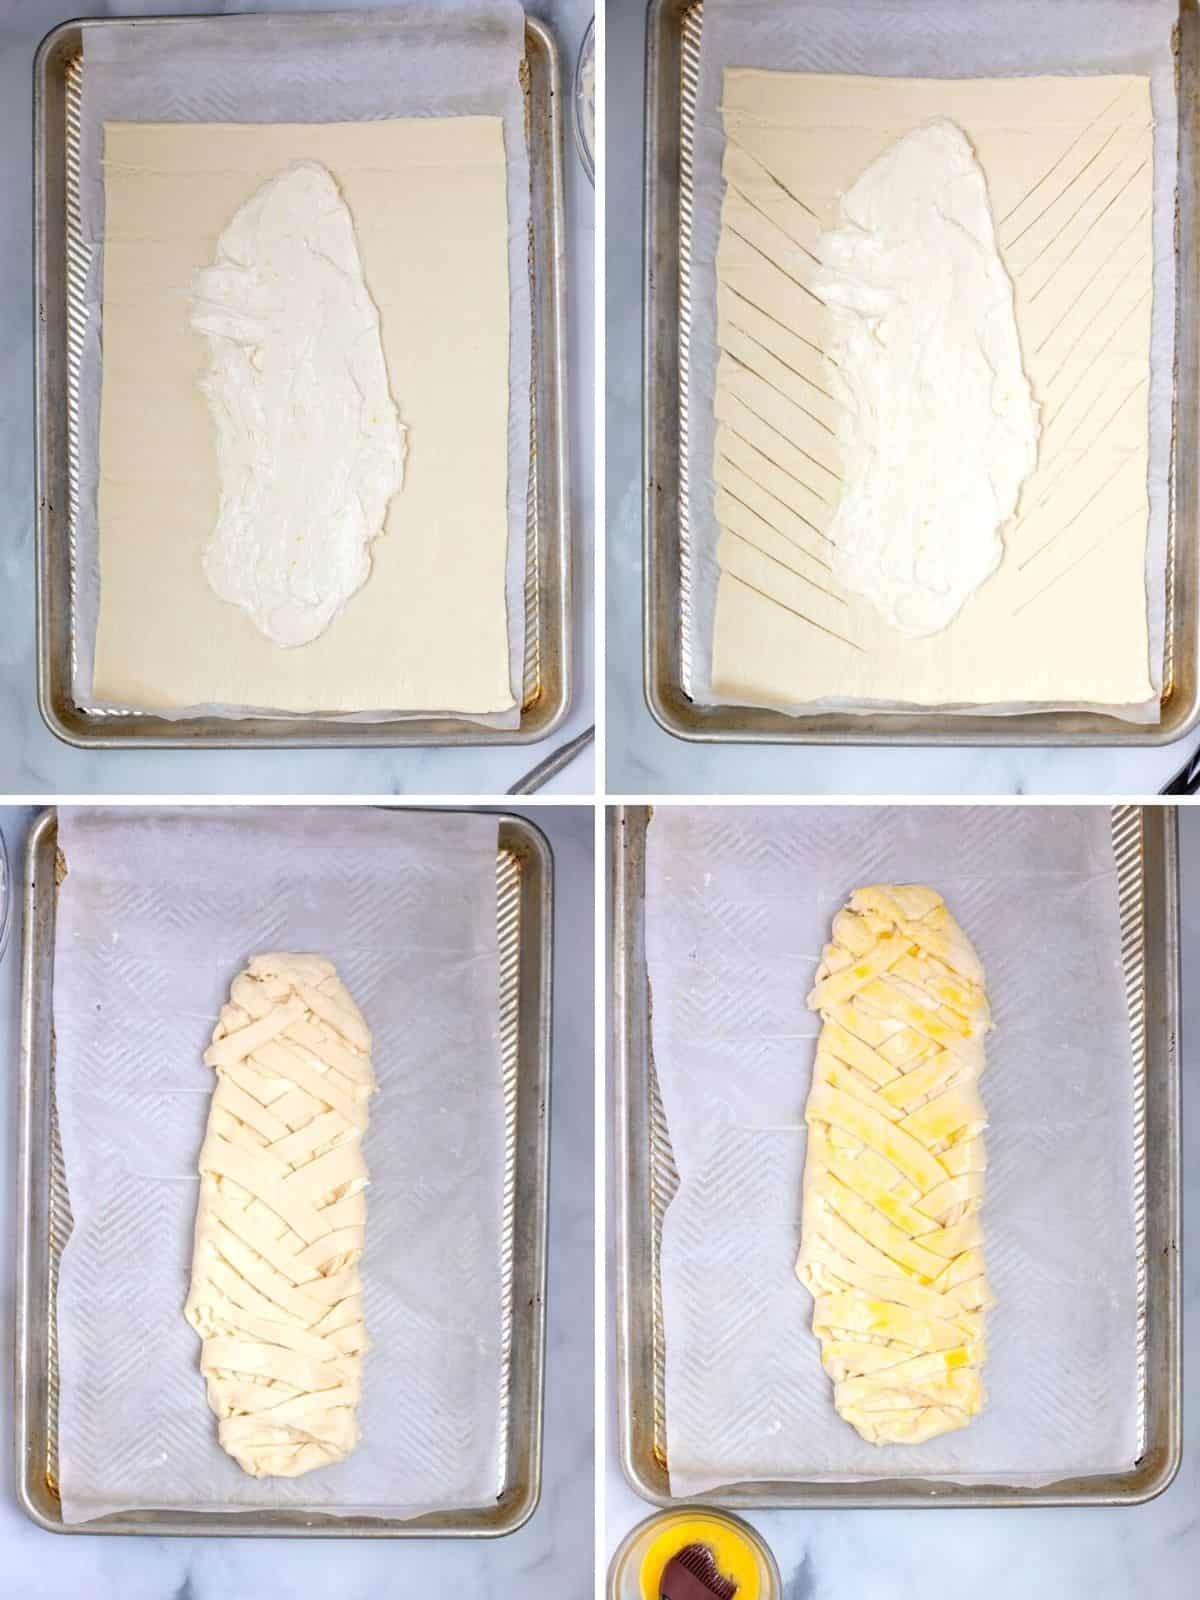 4 pictures showing step by step process of filling the danish with the cream cheese mixture.